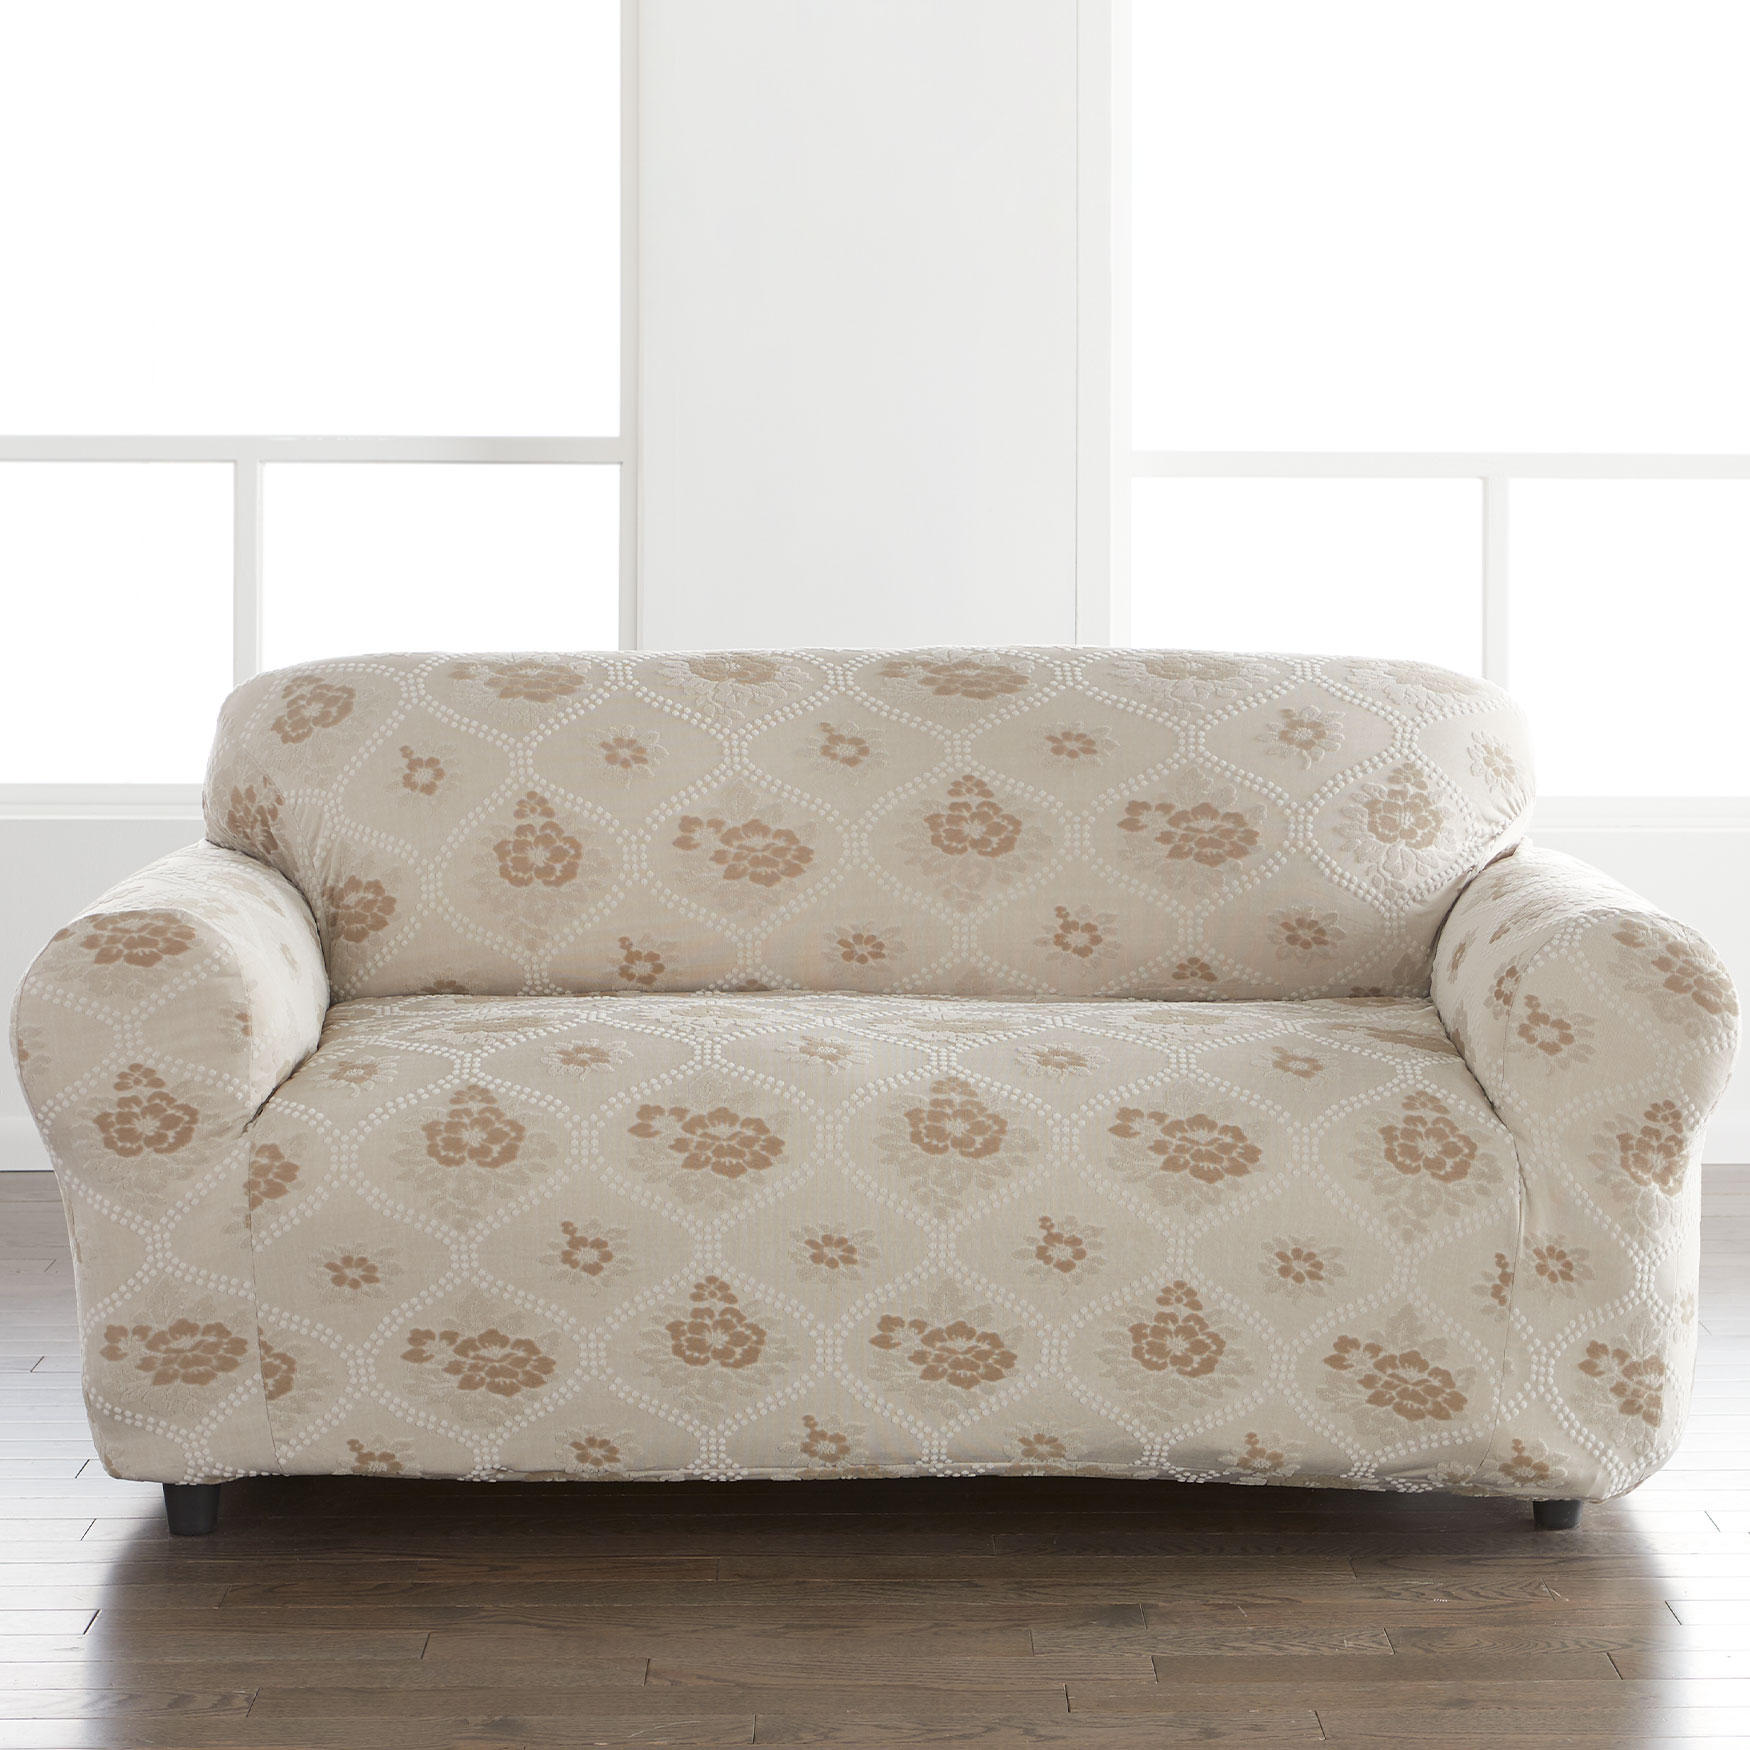 Floral Stretch Loveseat Slipcover,